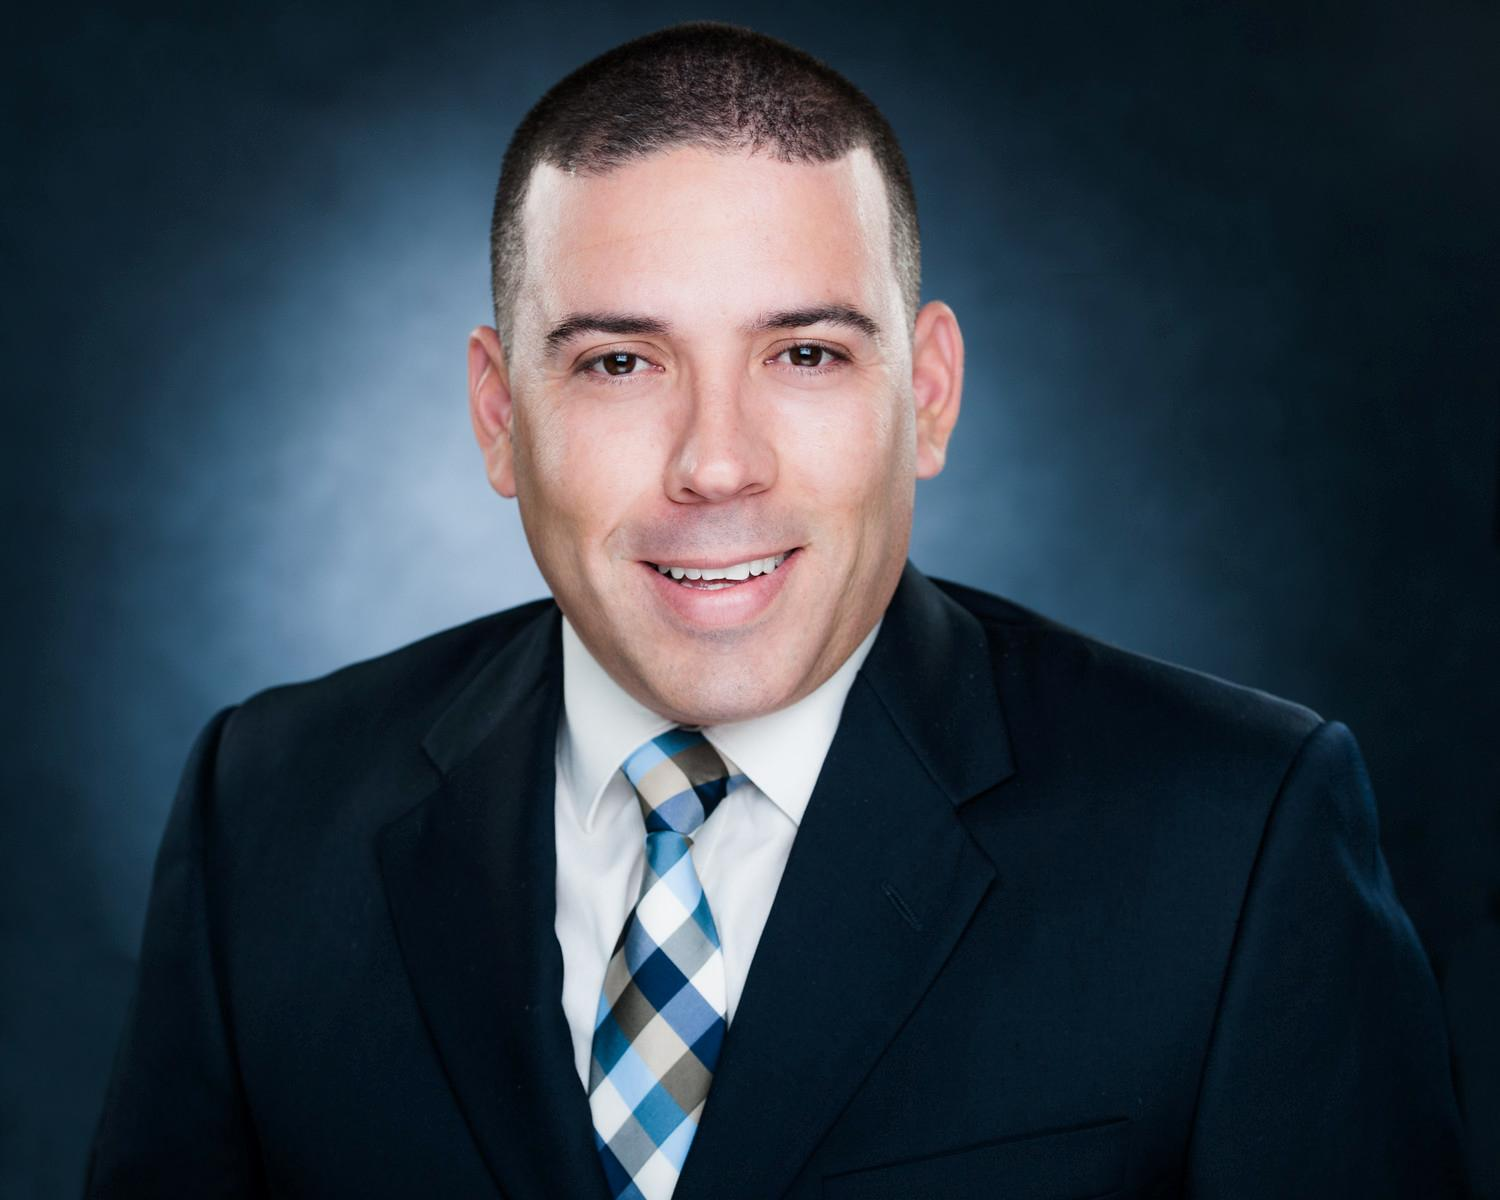 DANIEL PITA Financial Professional & Insurance Agent